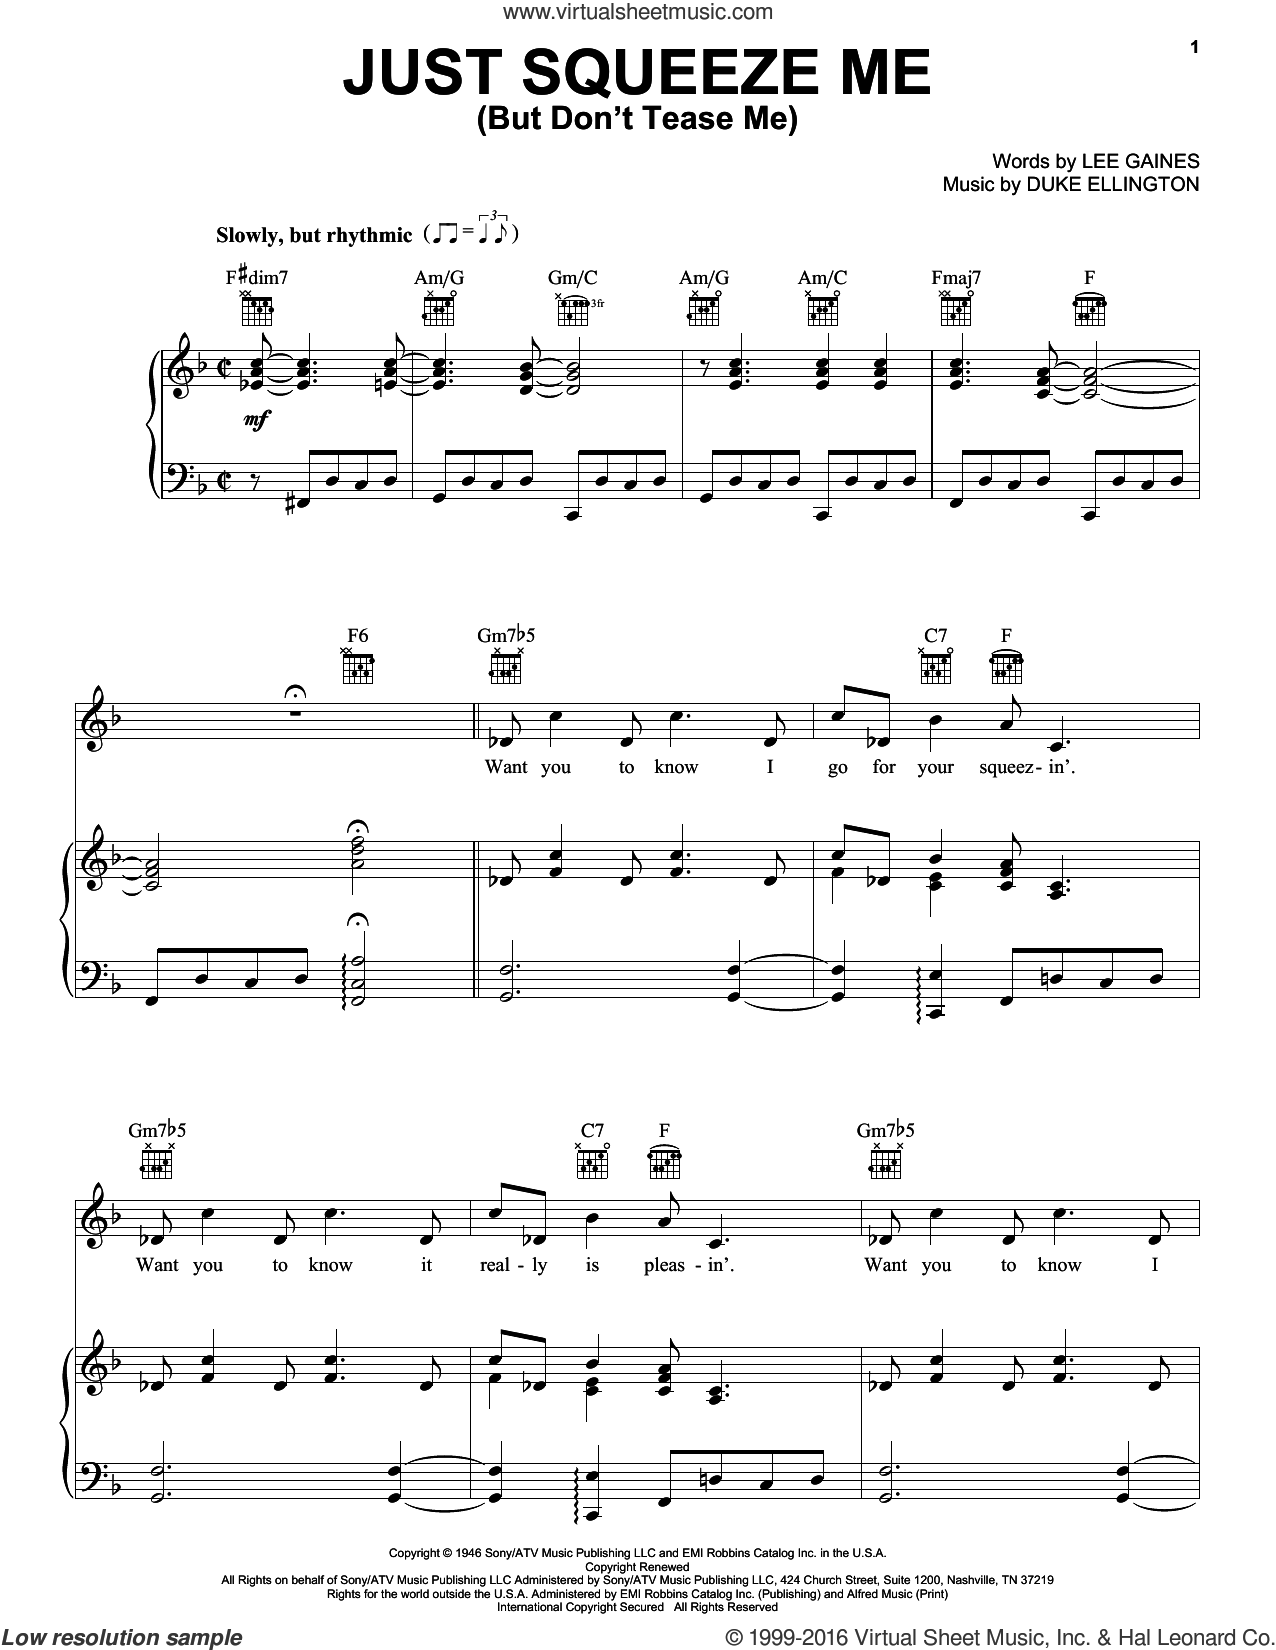 Just Squeeze Me (But Don't Tease Me) sheet music for voice, piano or guitar by Lee Gaines